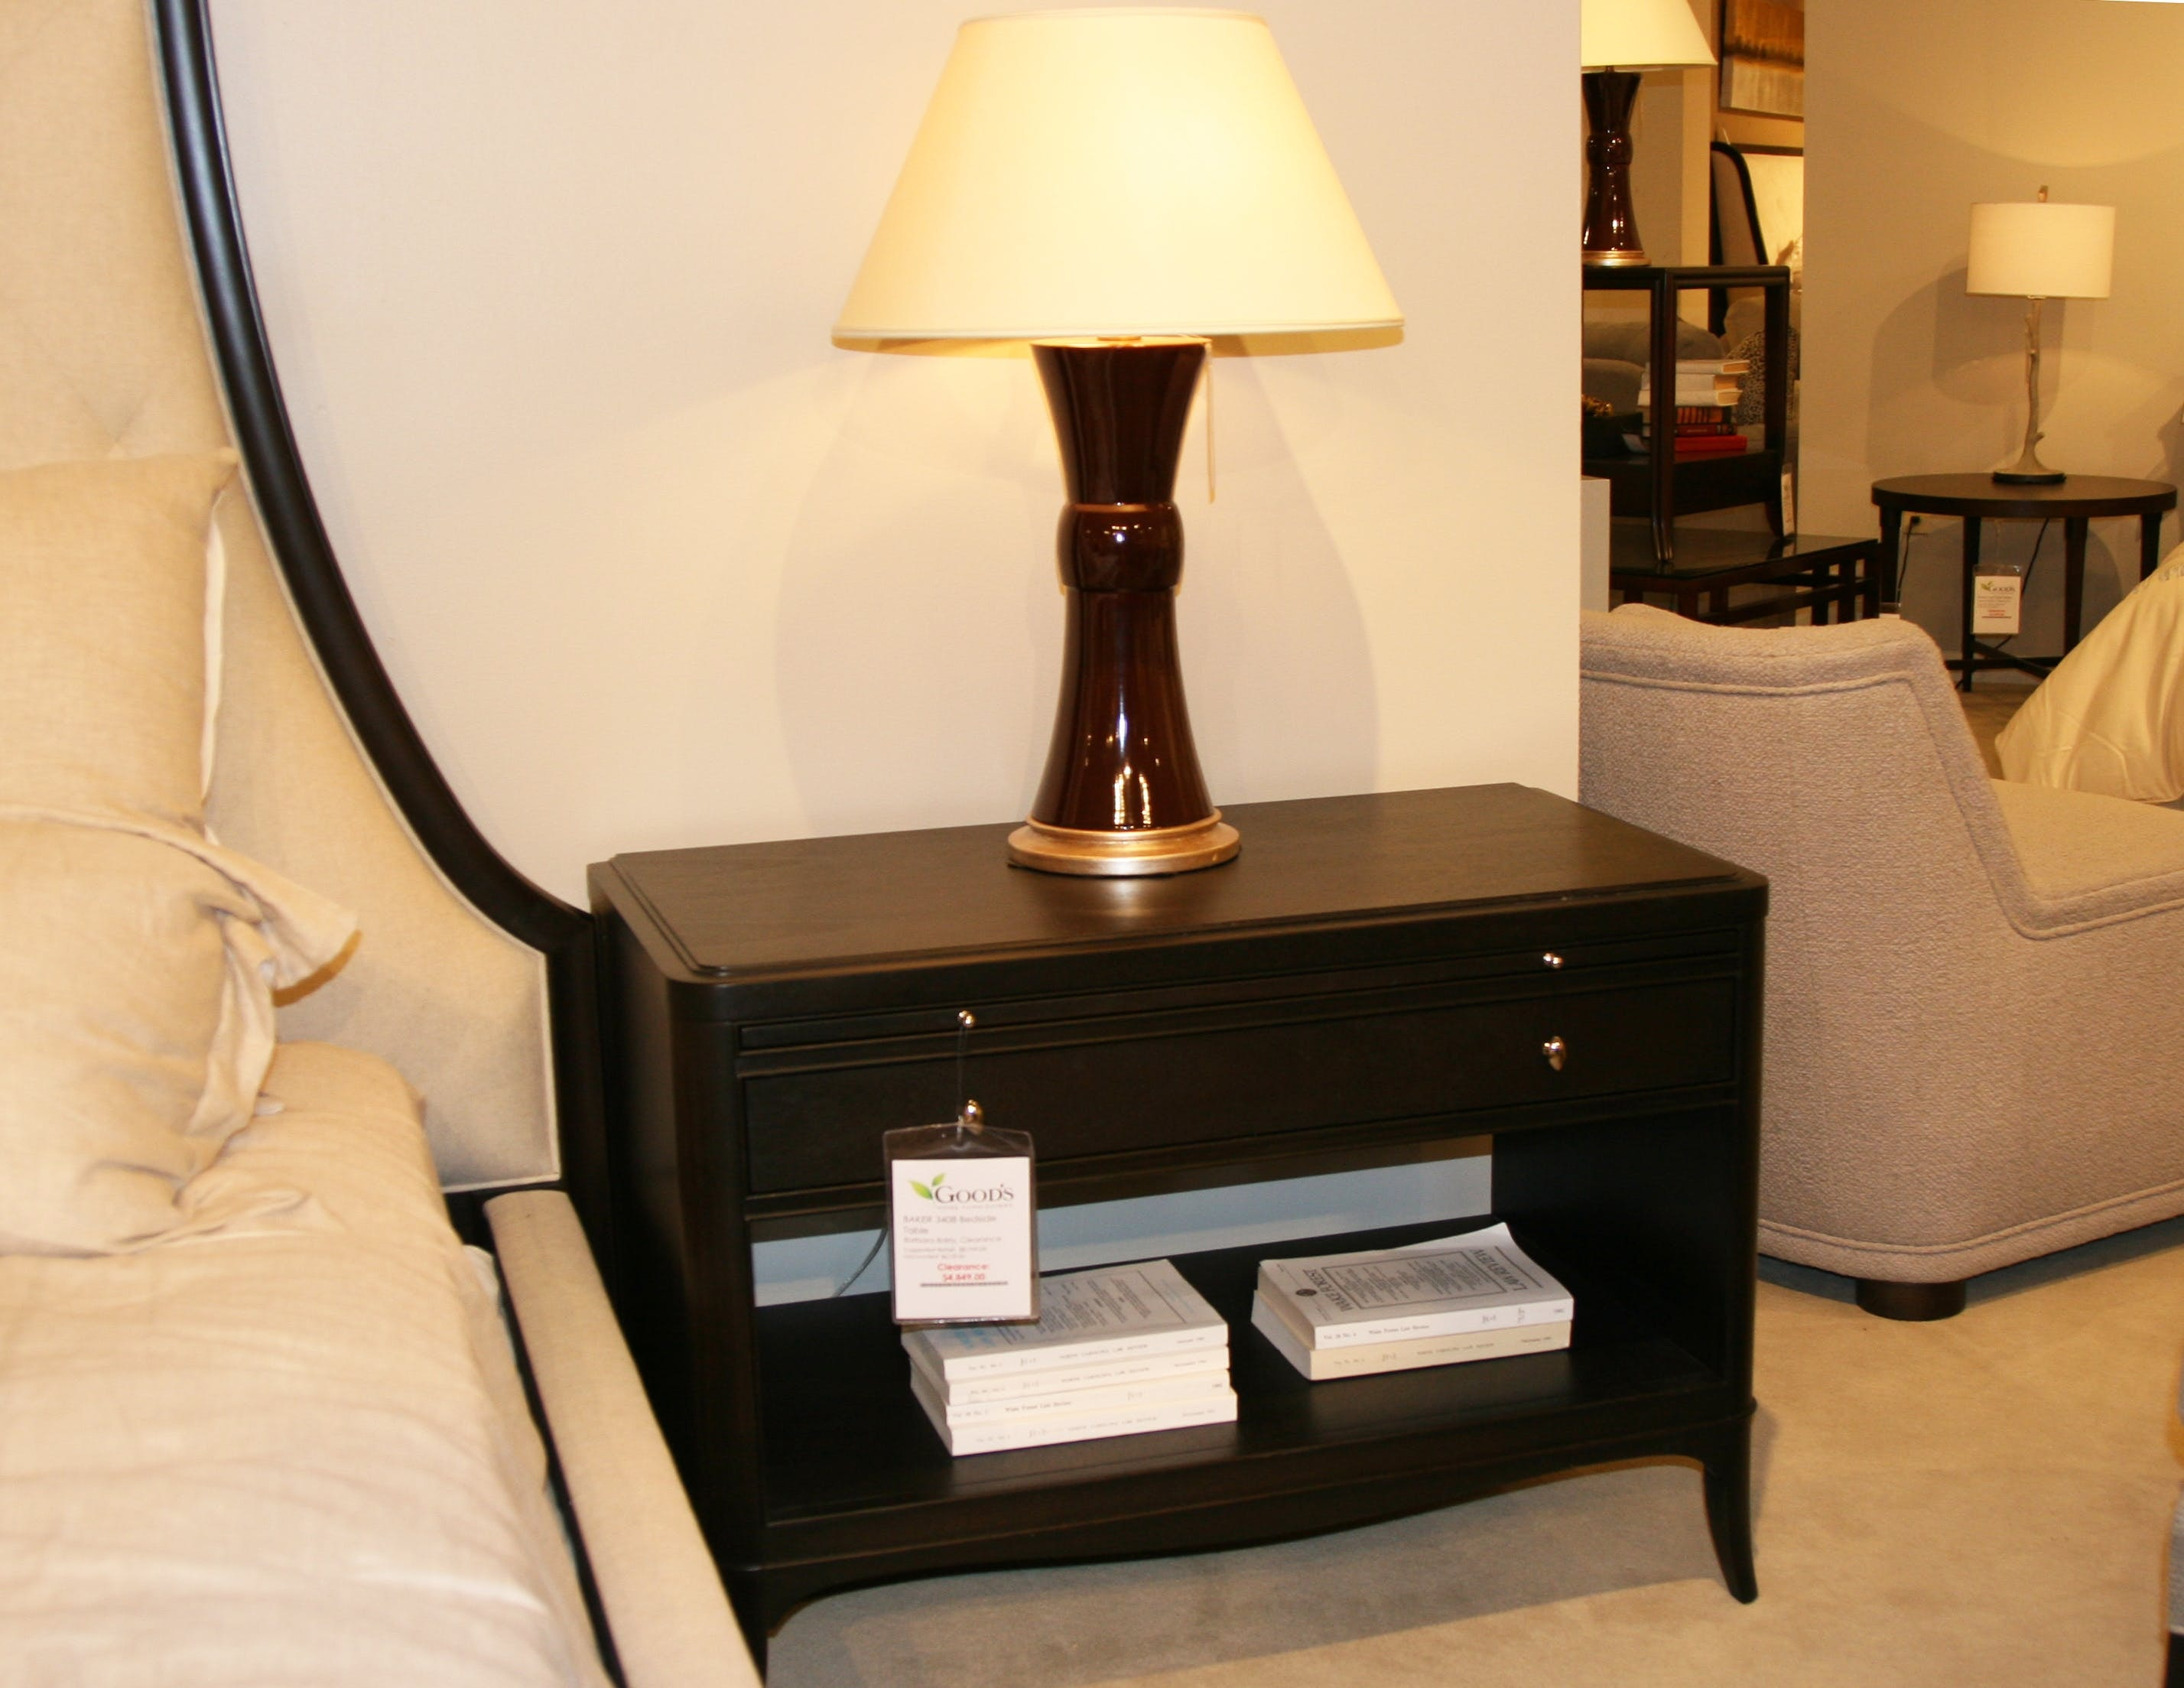 Goodu0027s Furniture Outlet Barbara Barry King Bedroom Group By Baker Furniture  3408 Clearance